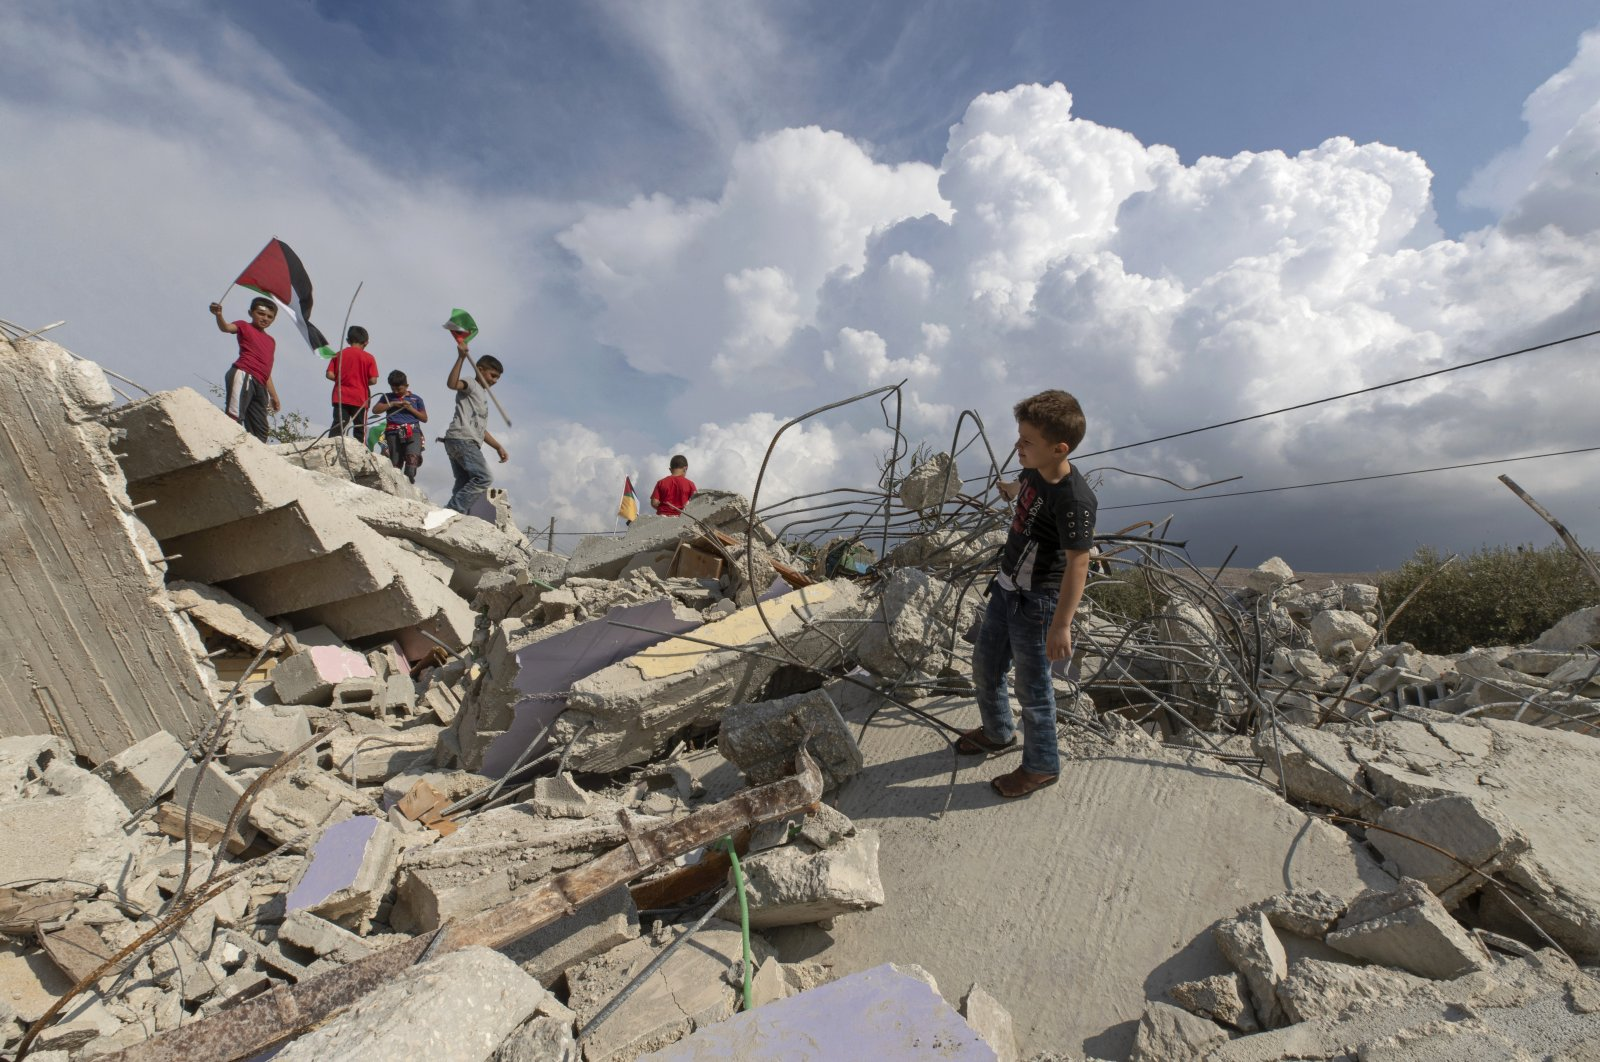 Palestinian children play on top of the demolished house of Khalil Dweikat, in the occupied West Bank village of Rojeeb, Palestine, Nov. 2, 2020. (AP File Photo/Nasser Nasser)